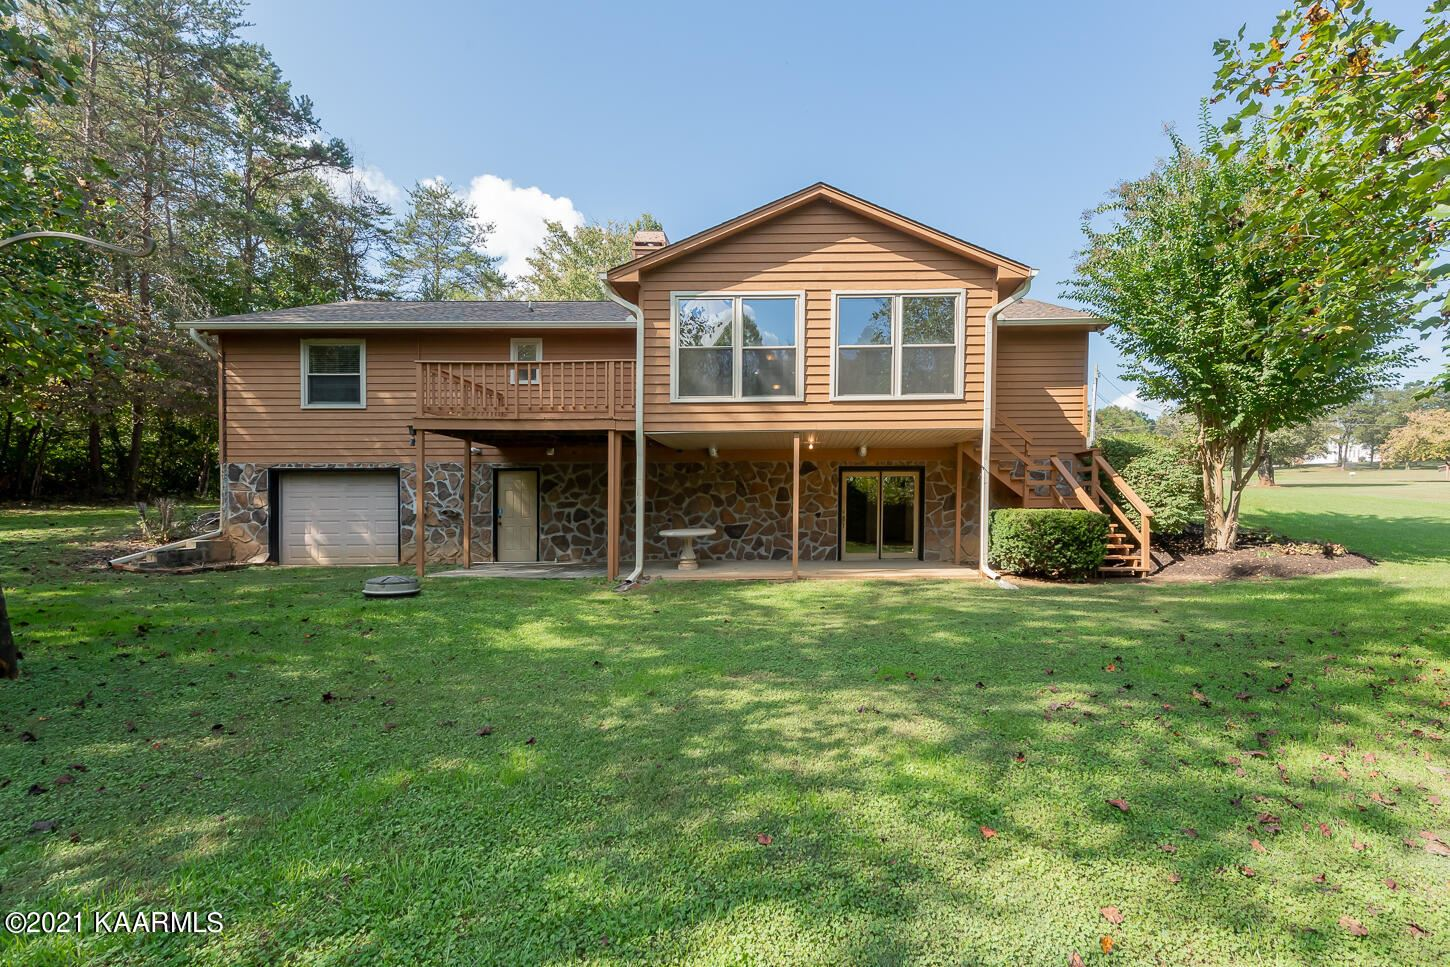 Photo of 900 Kimberlin Heights Rd, Knoxville, TN 37920 (MLS # 1170596)